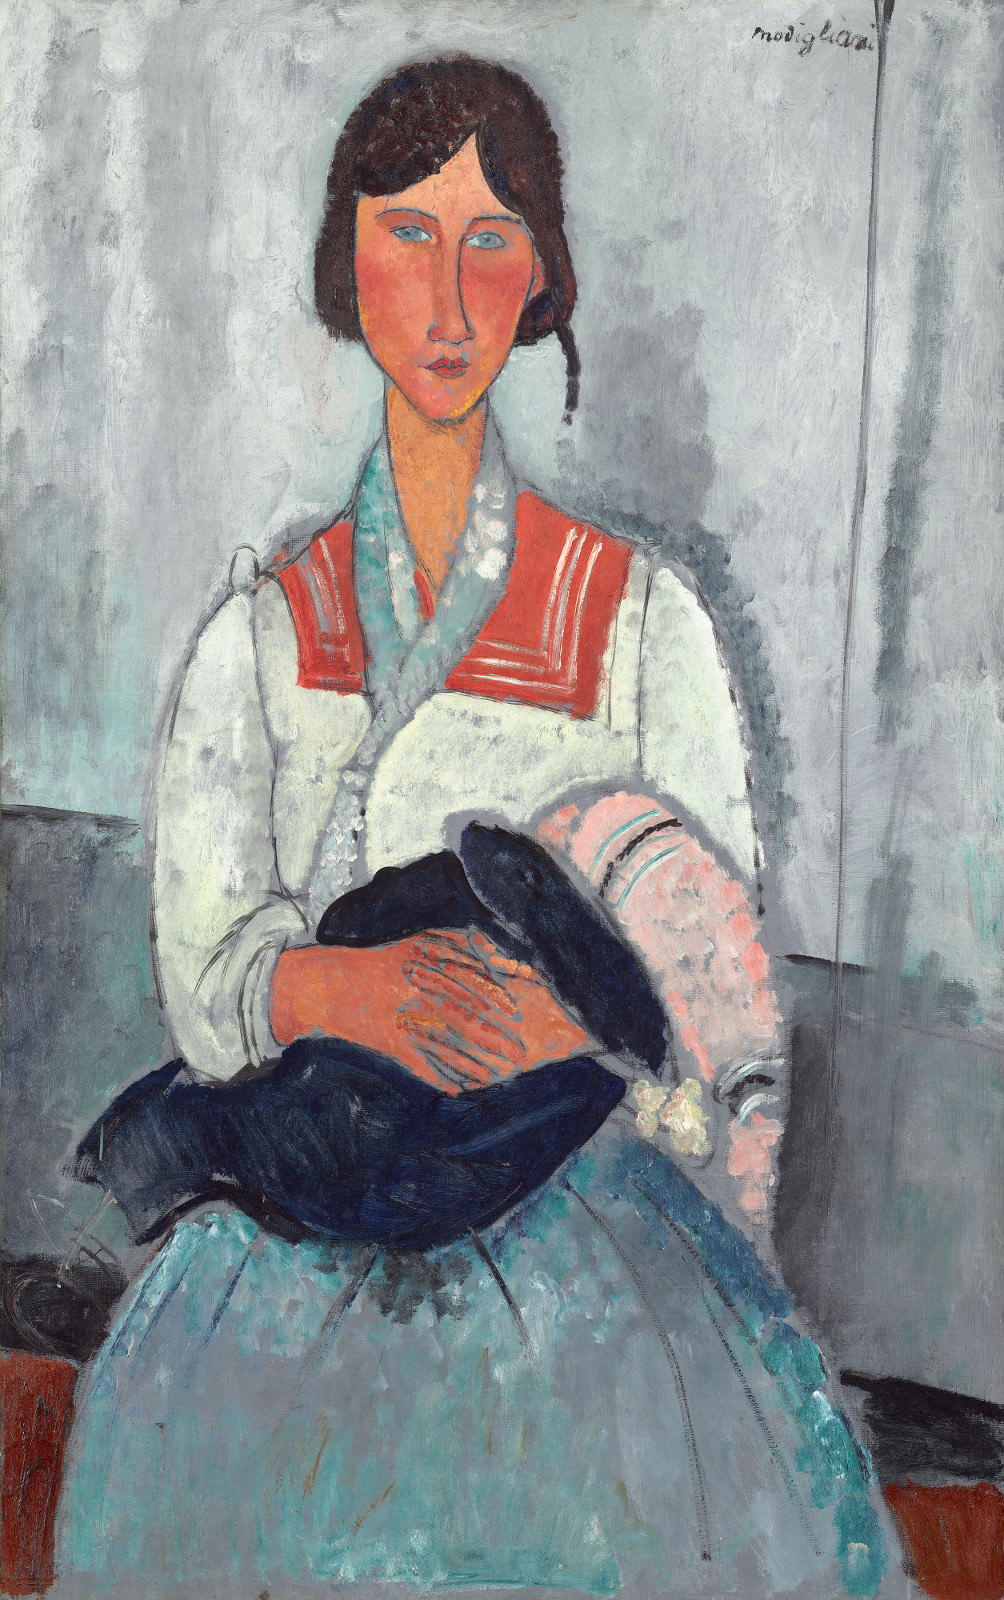 Fig. 6 - Las mujeres gitano con bebé, Amedeo Modigliani, 1919, óleo sobre lienzo, 115.9 x 73 cm. National Gallery of Art, Washington. Colección de Chester Dale.